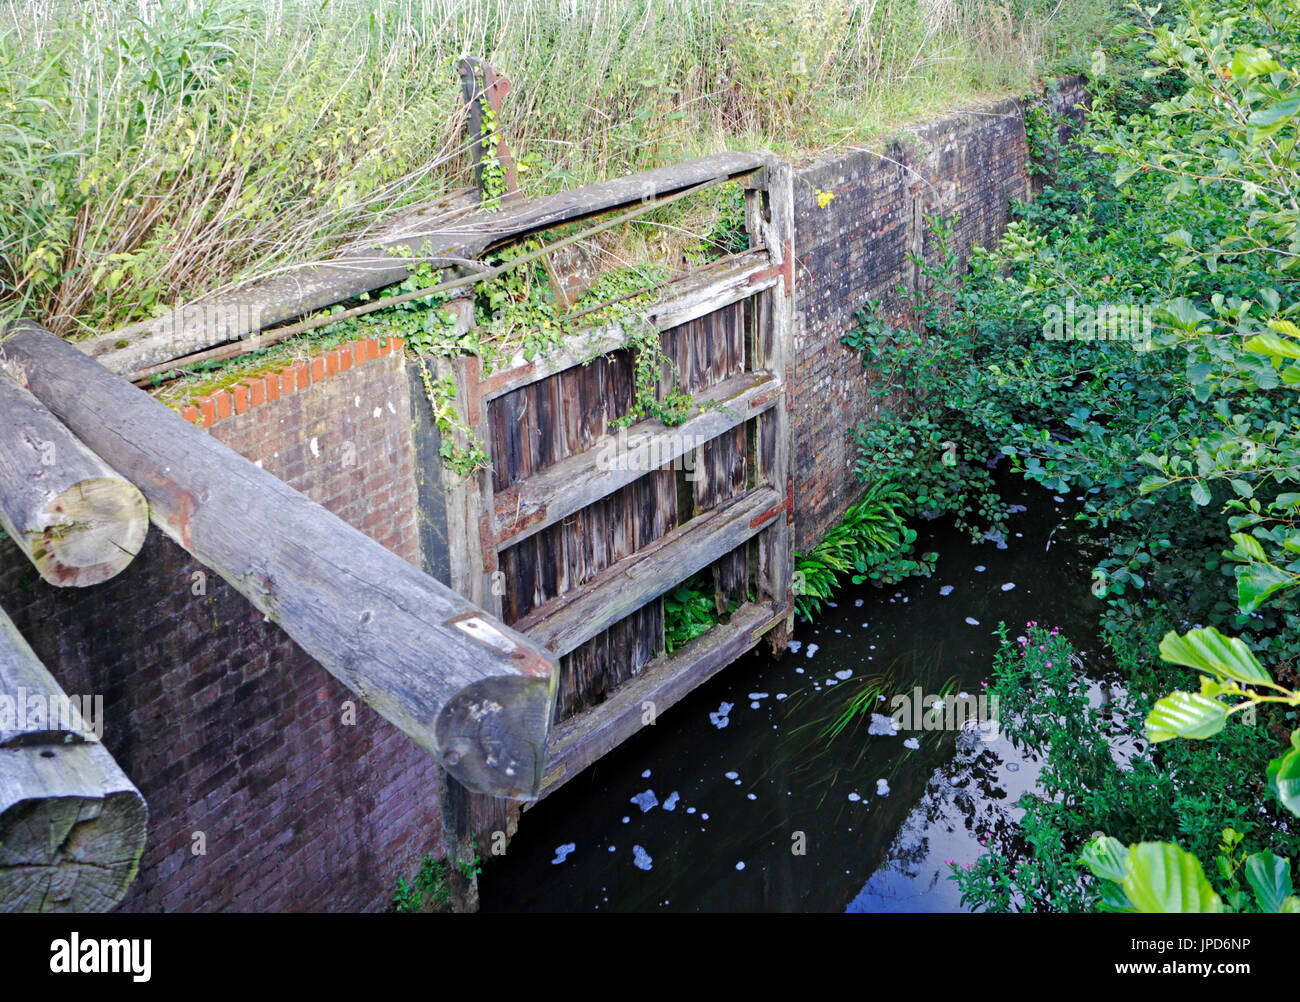 A disused lock gate on the old North Walsham and Dilham Canal at Briggate, near North Walsham, Norfolk, England, United Kingdom, Europe. - Stock Image